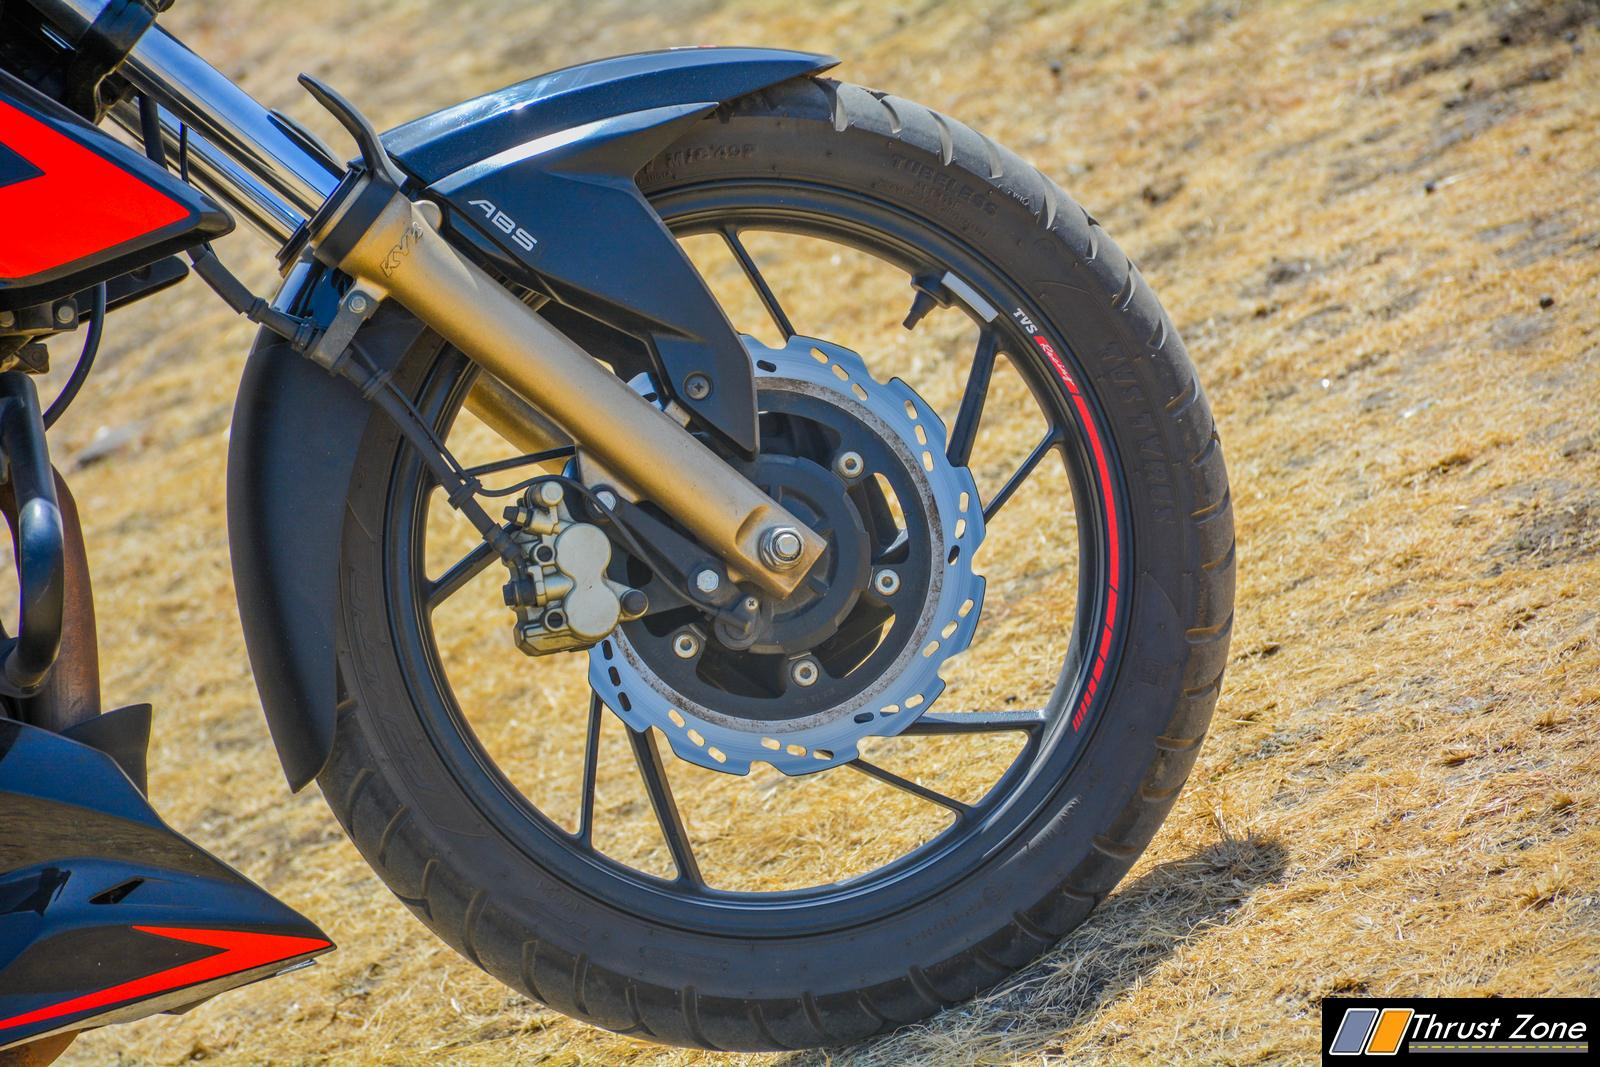 https://www.thrustzone.com/wp-content/uploads/2019/03/2019-Apache-RTR-200-Race-Edition-Review-4.jpg